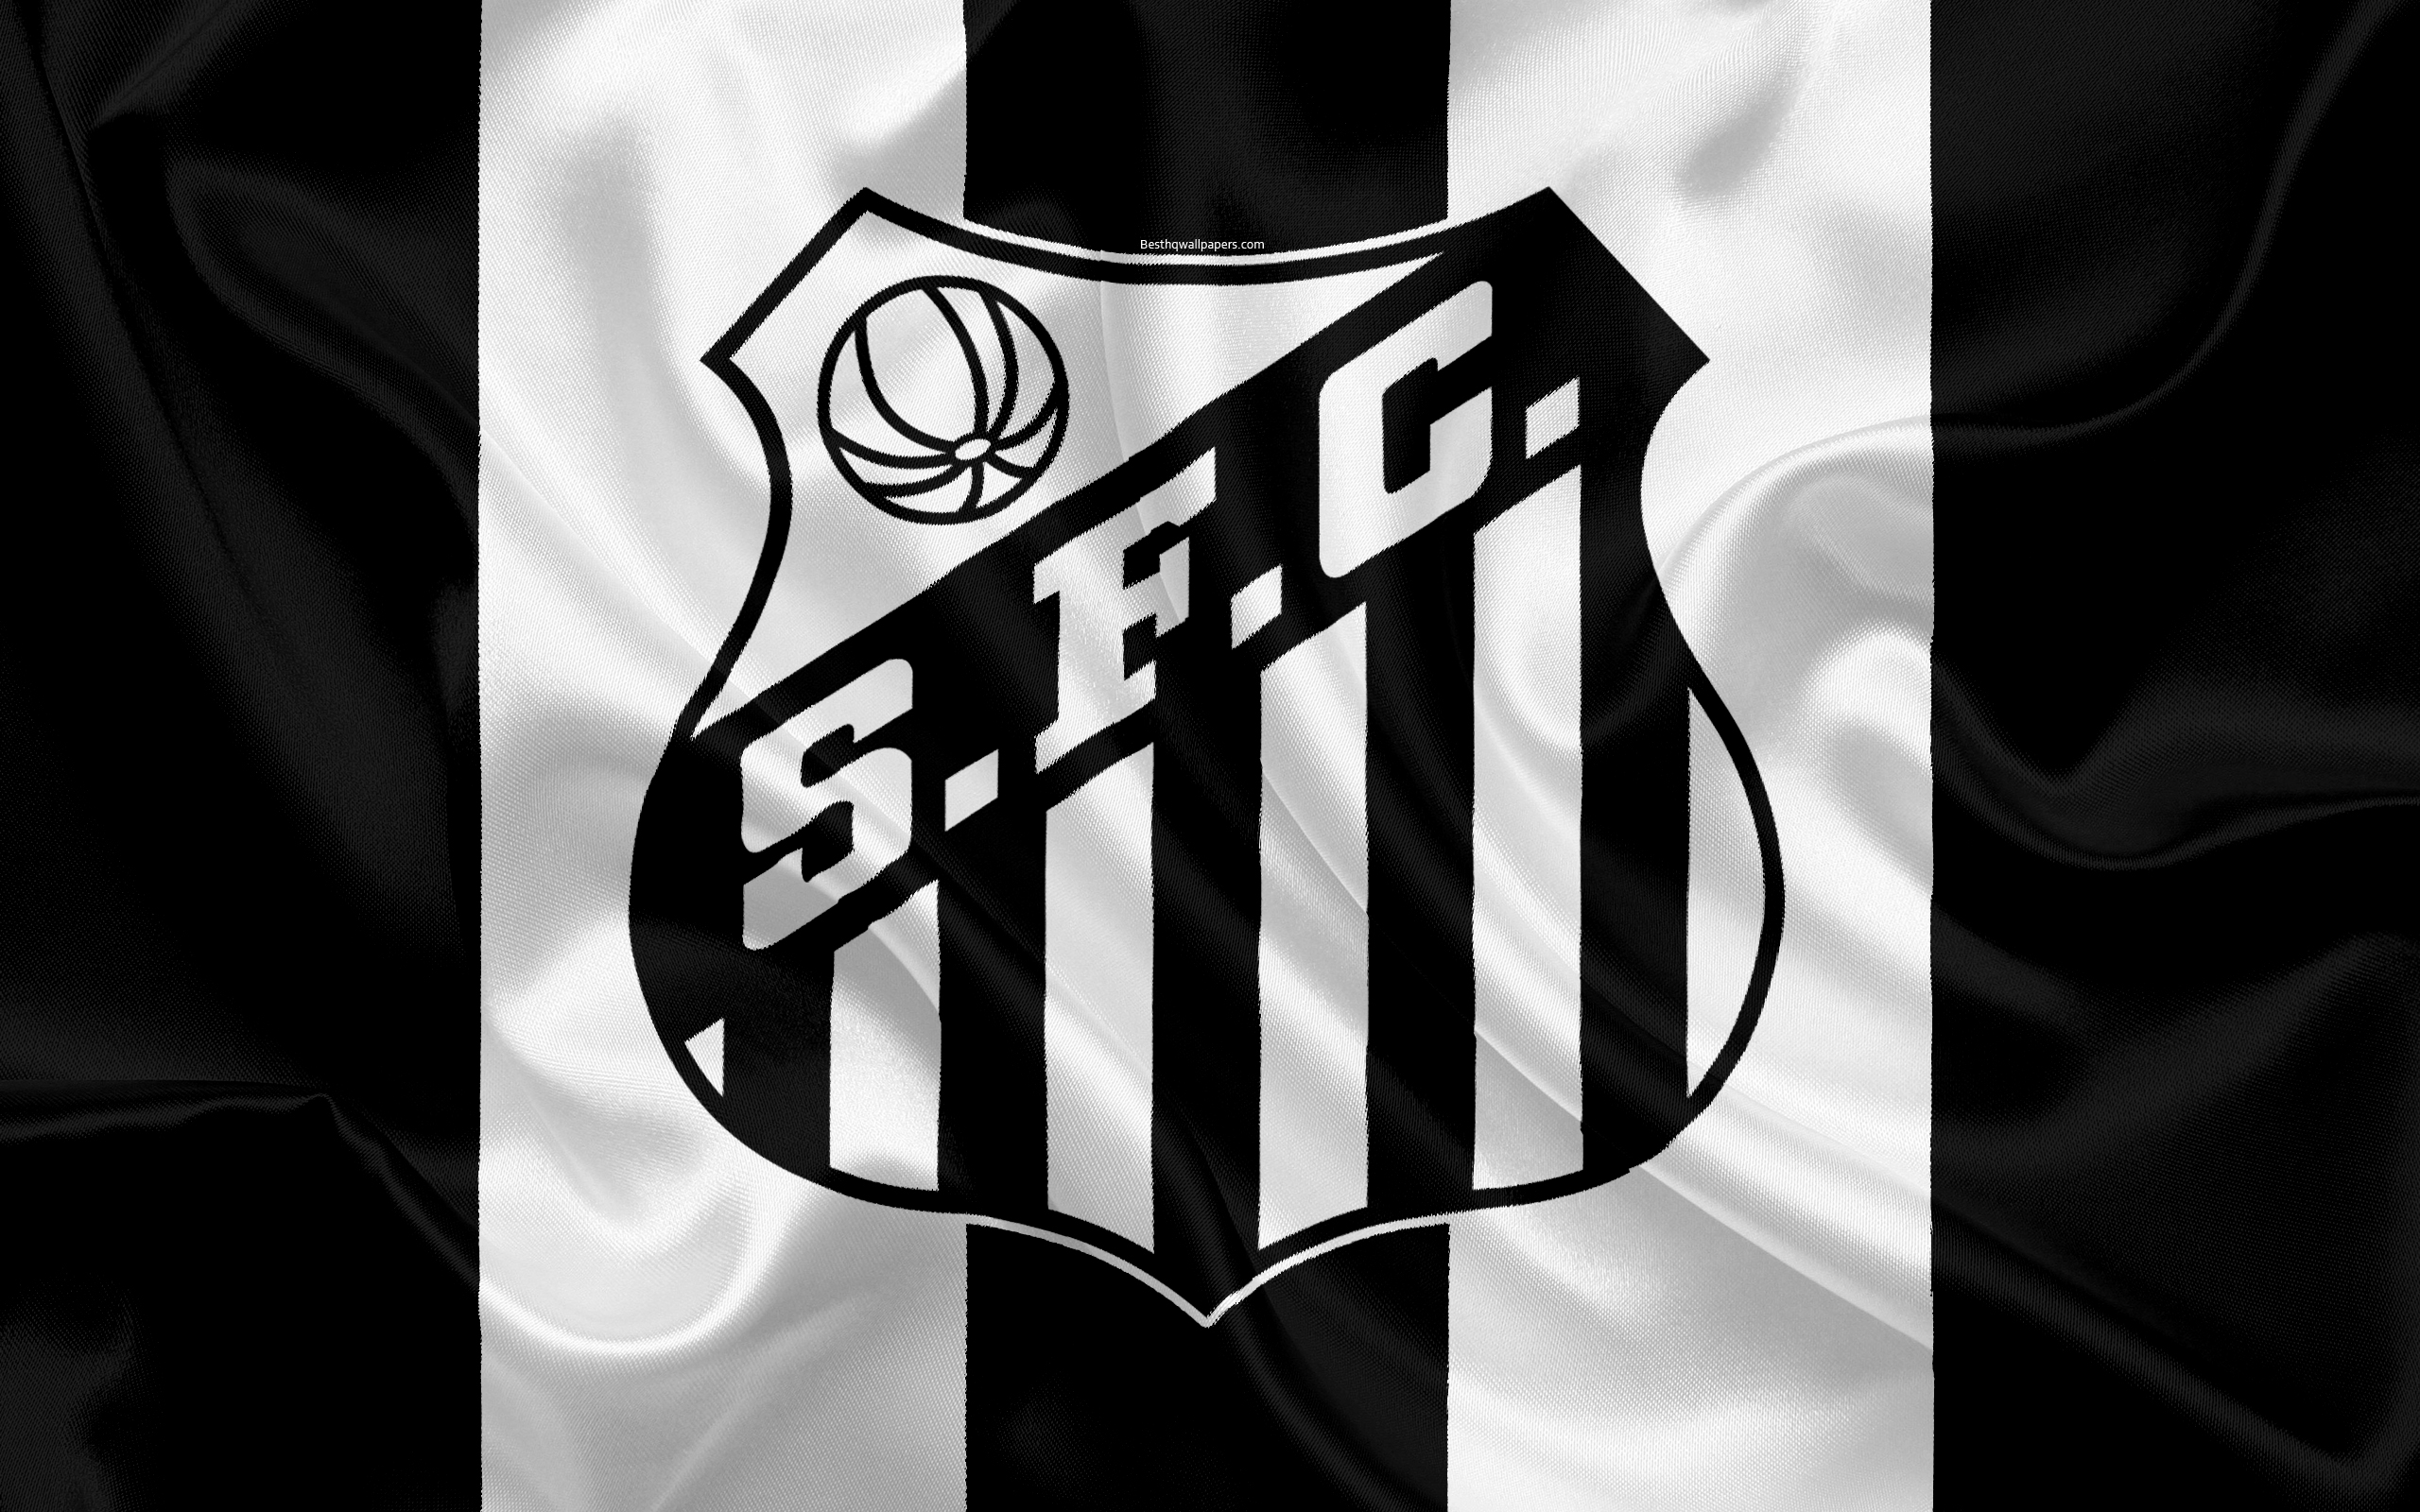 Download wallpapers Santos FC Brazilian football club emblem 2560x1600